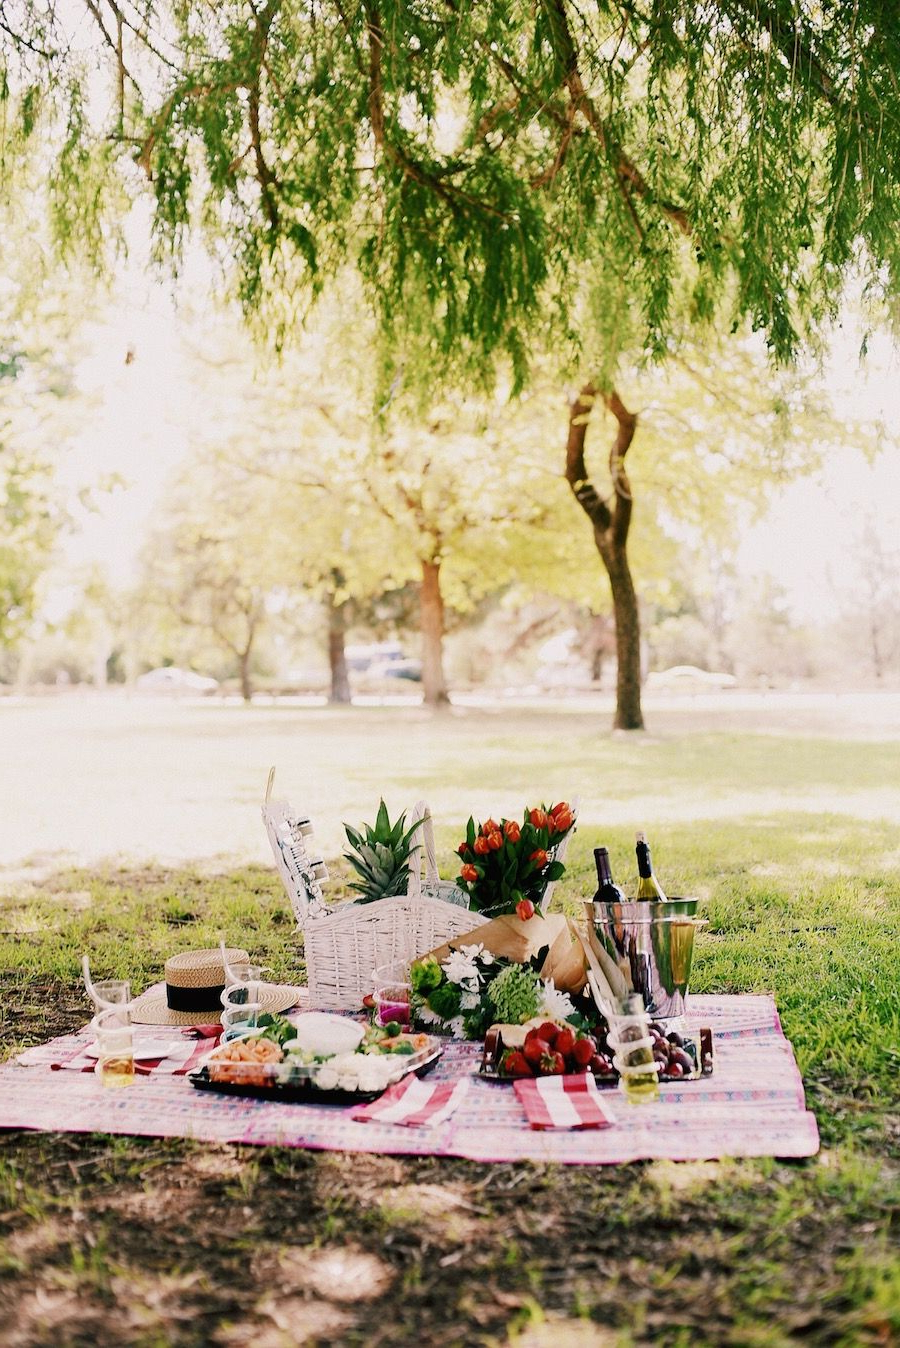 Trendy Picnic Style, Beautiful Picnic Set Up, Mom & Son Style, Alexa Chung Regarding Pratiksha Sonoma 5 Piece Dining Sets (View 17 of 20)